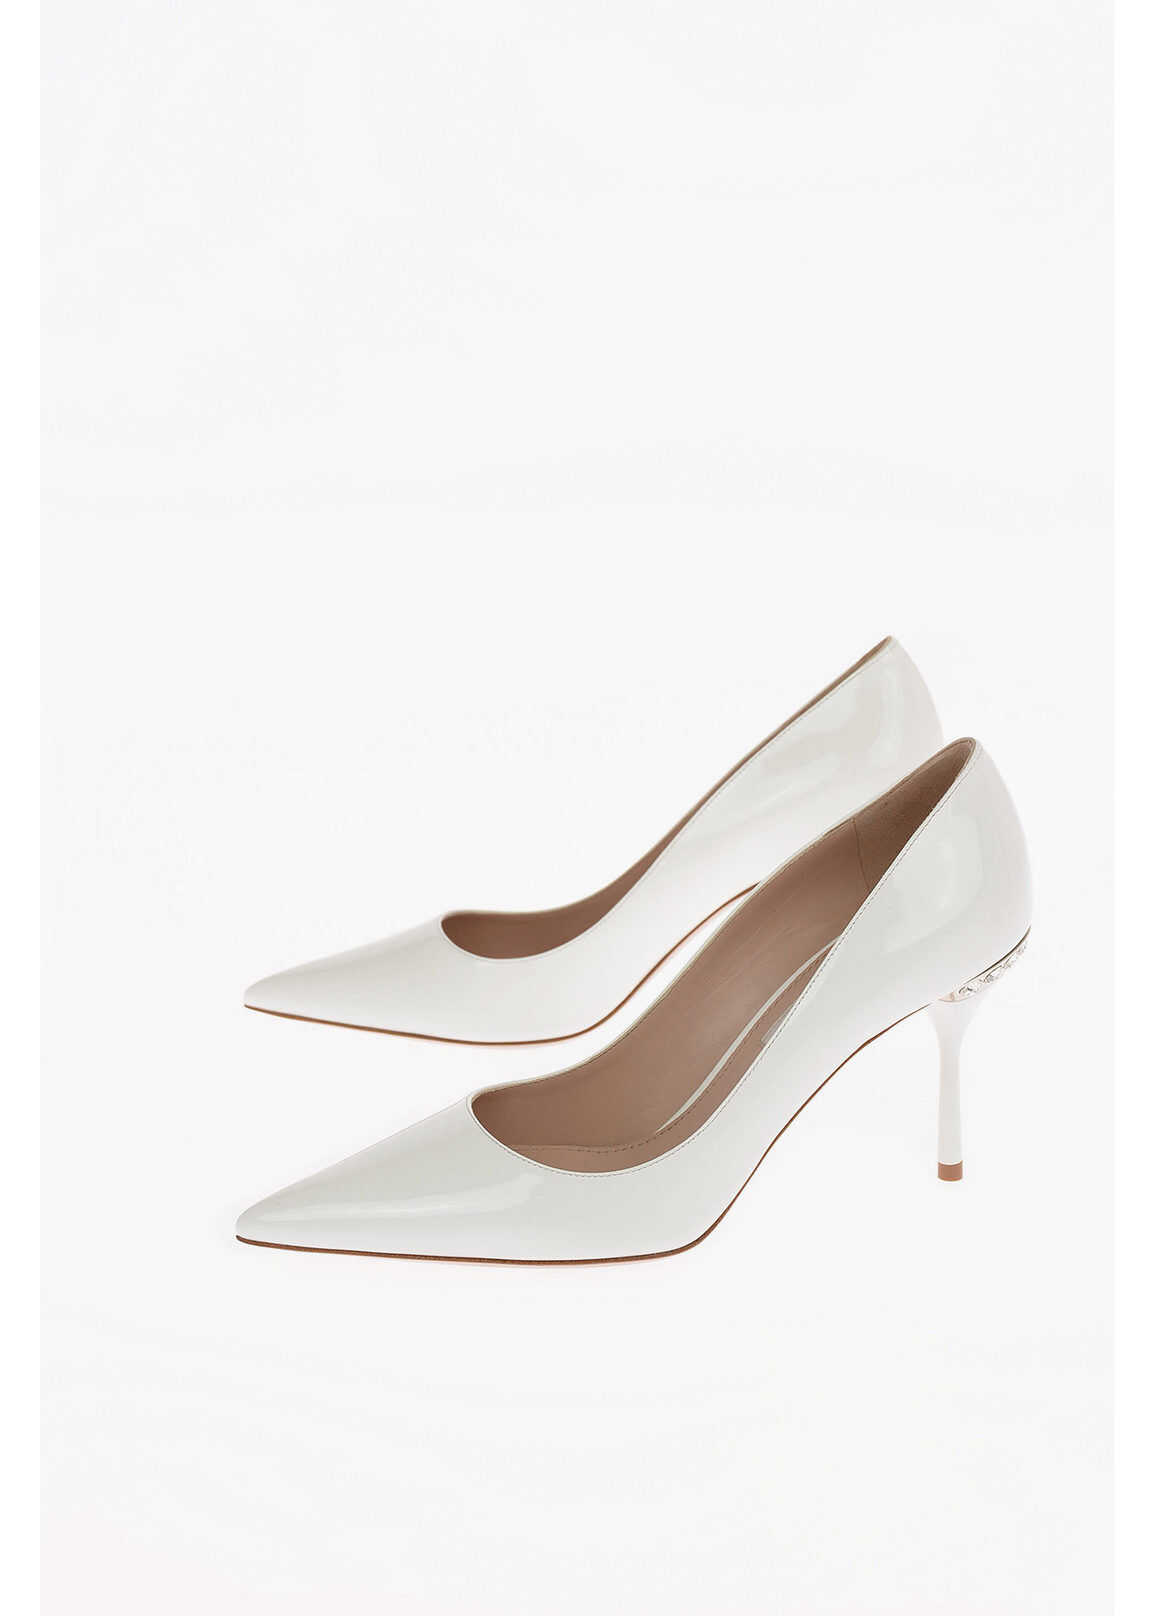 Miu Miu Lacquered Leather Pumps with Jewel Detail 9cm WHITE imagine b-mall.ro